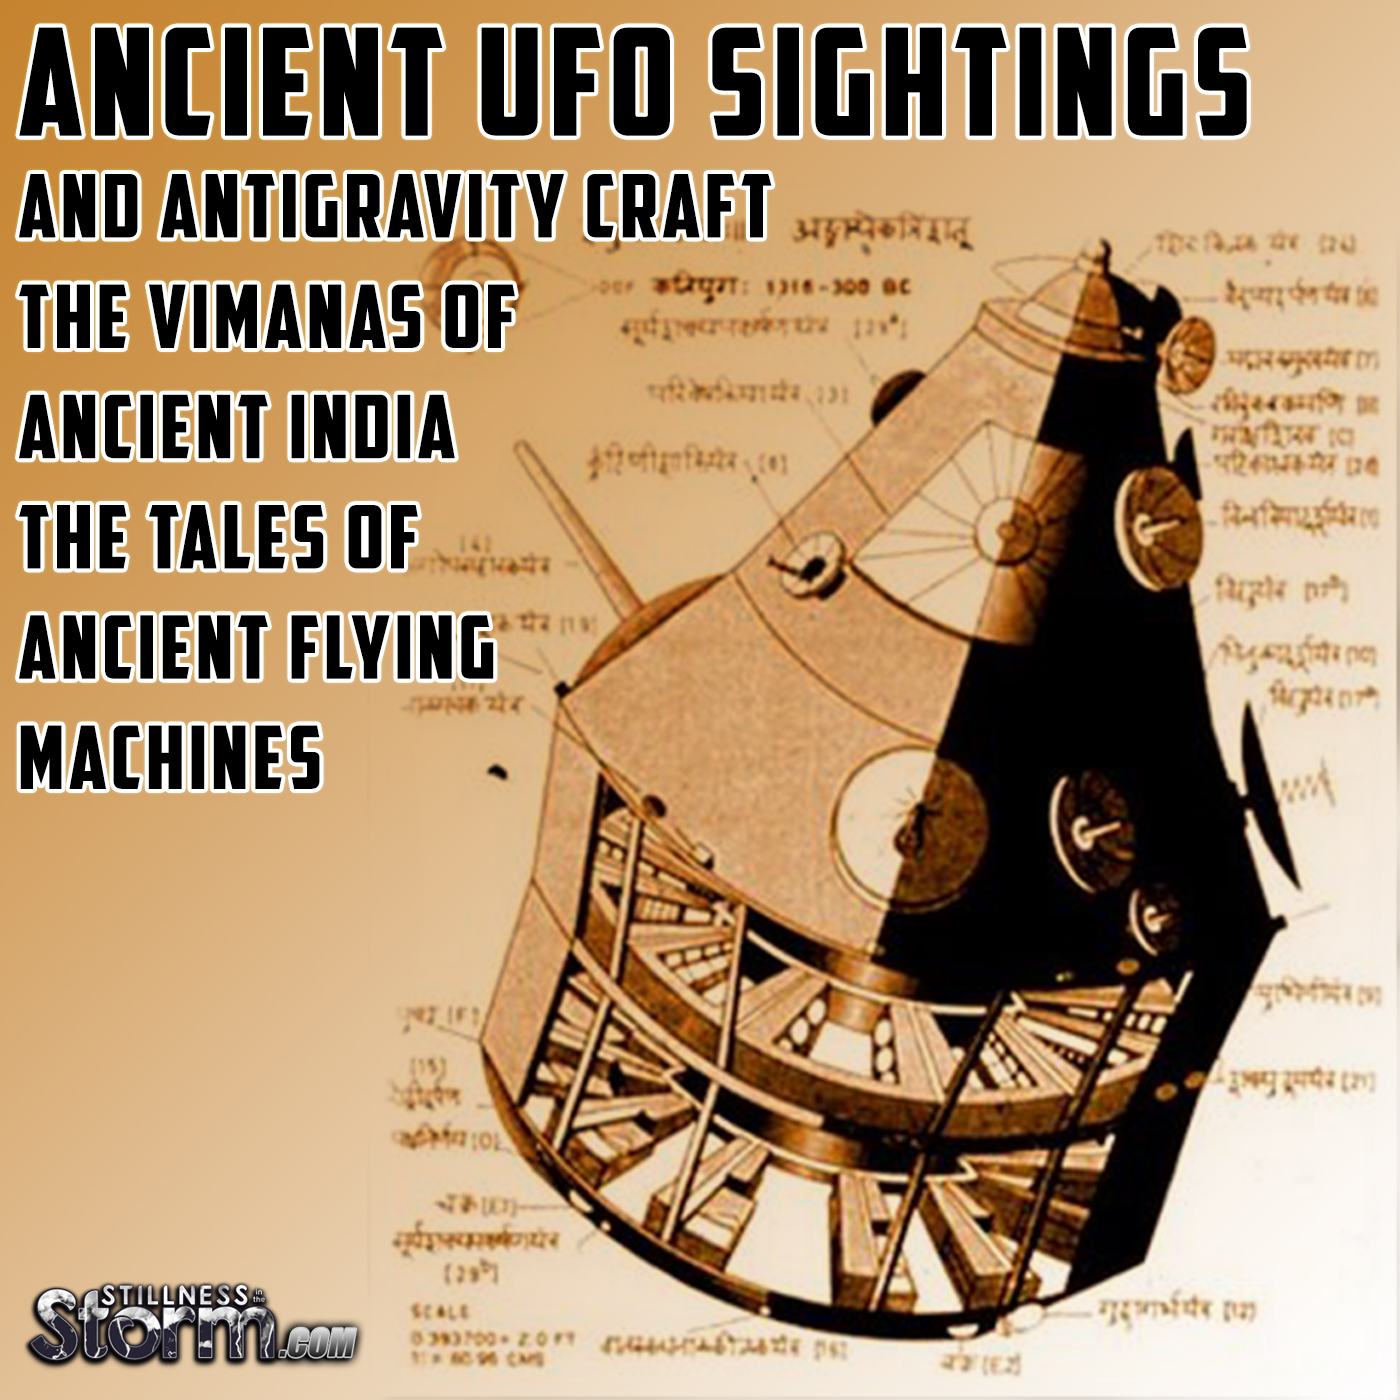 Ancient UFO Sightings and Antigravity Craft